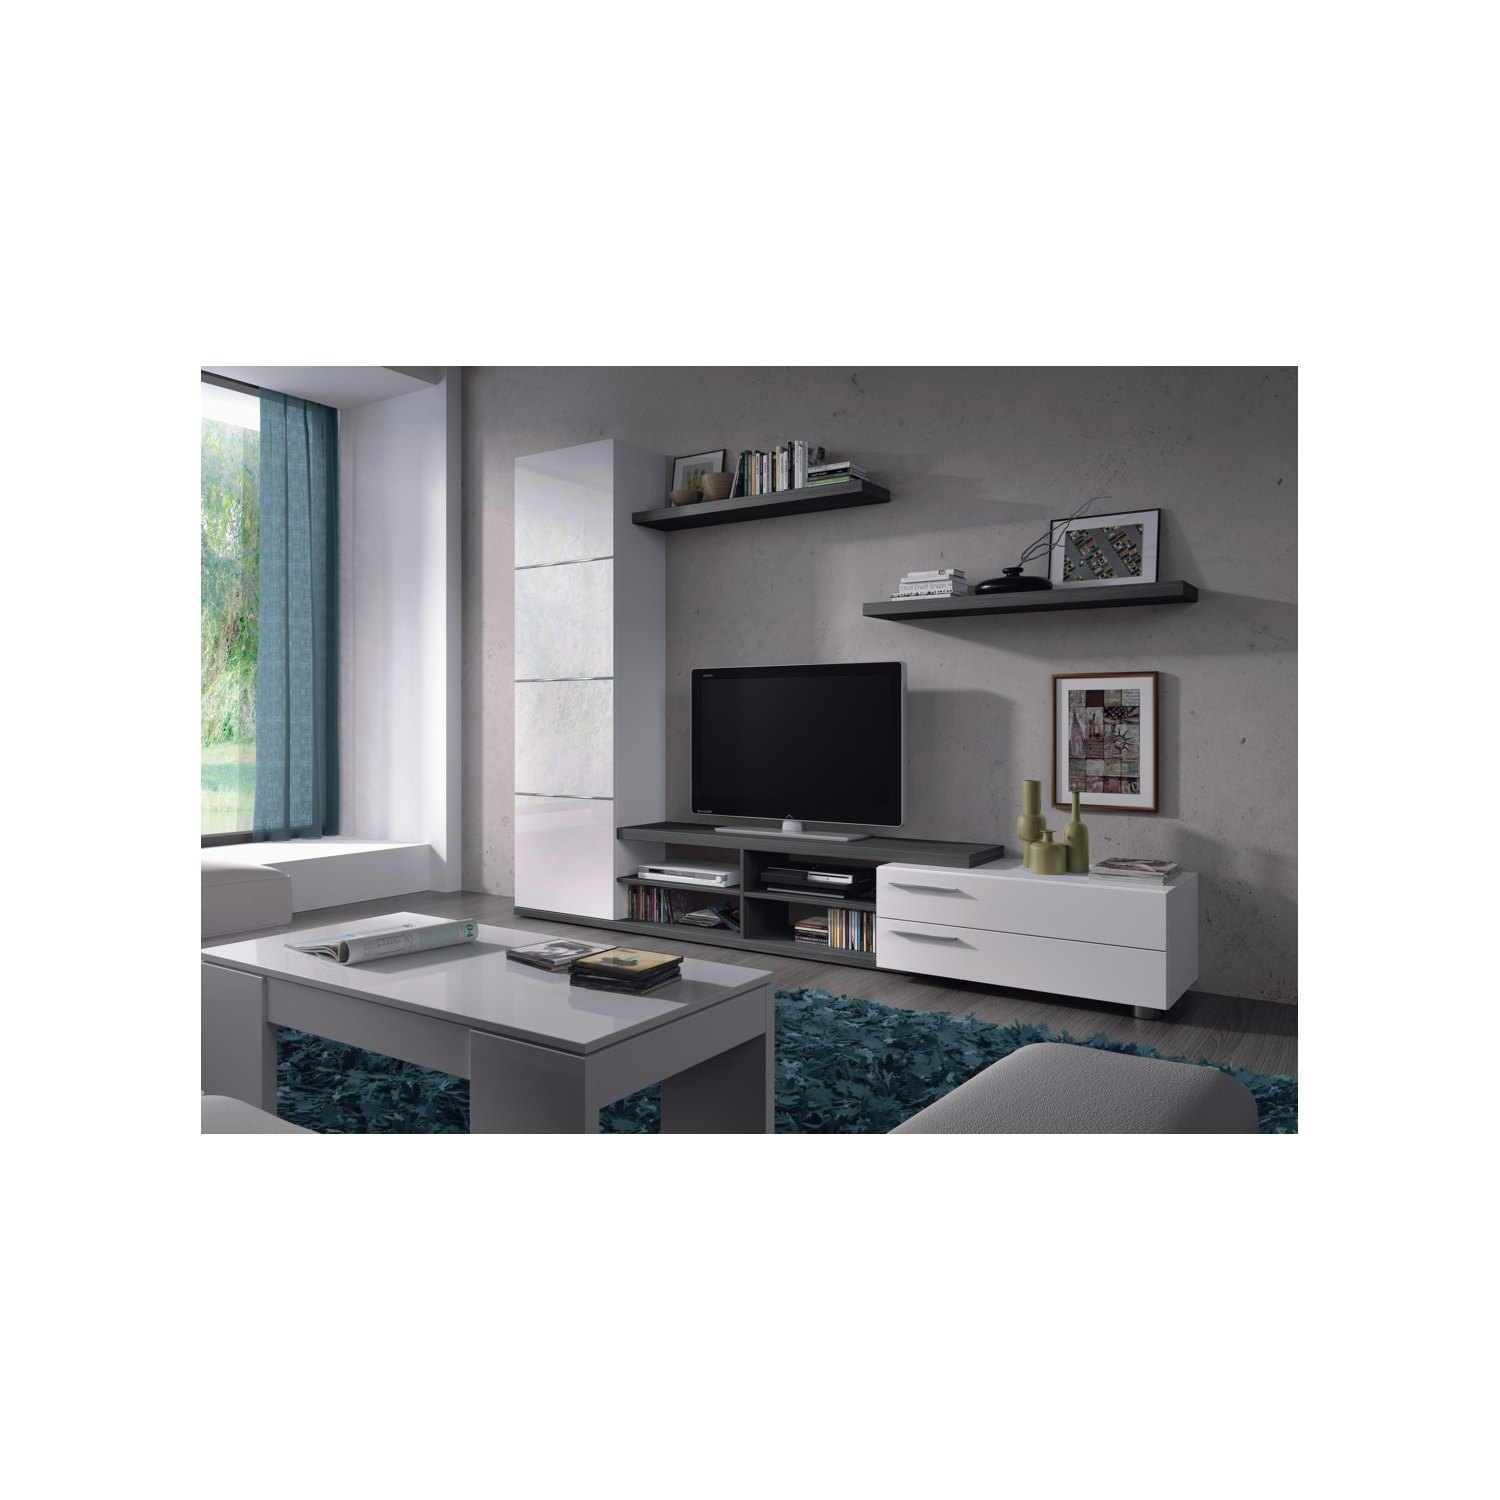 Offerta mobili per il salone online set mobili salone tv for Muebles de cocina 60 cm